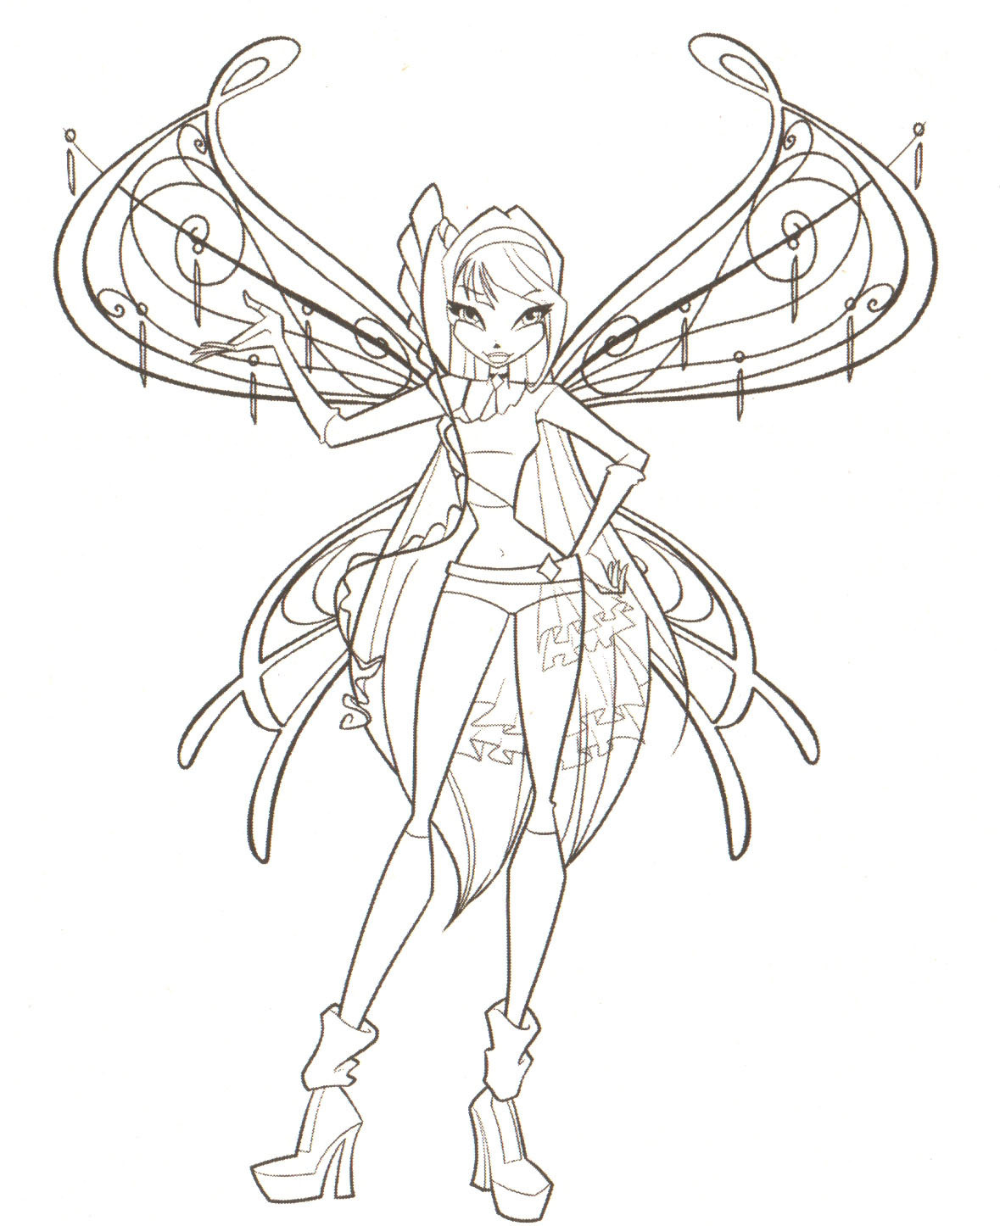 Winx Miusa Boyama Gazetesujin Coloring Pages Coloring Pages For Girls Cartoon Coloring Pages